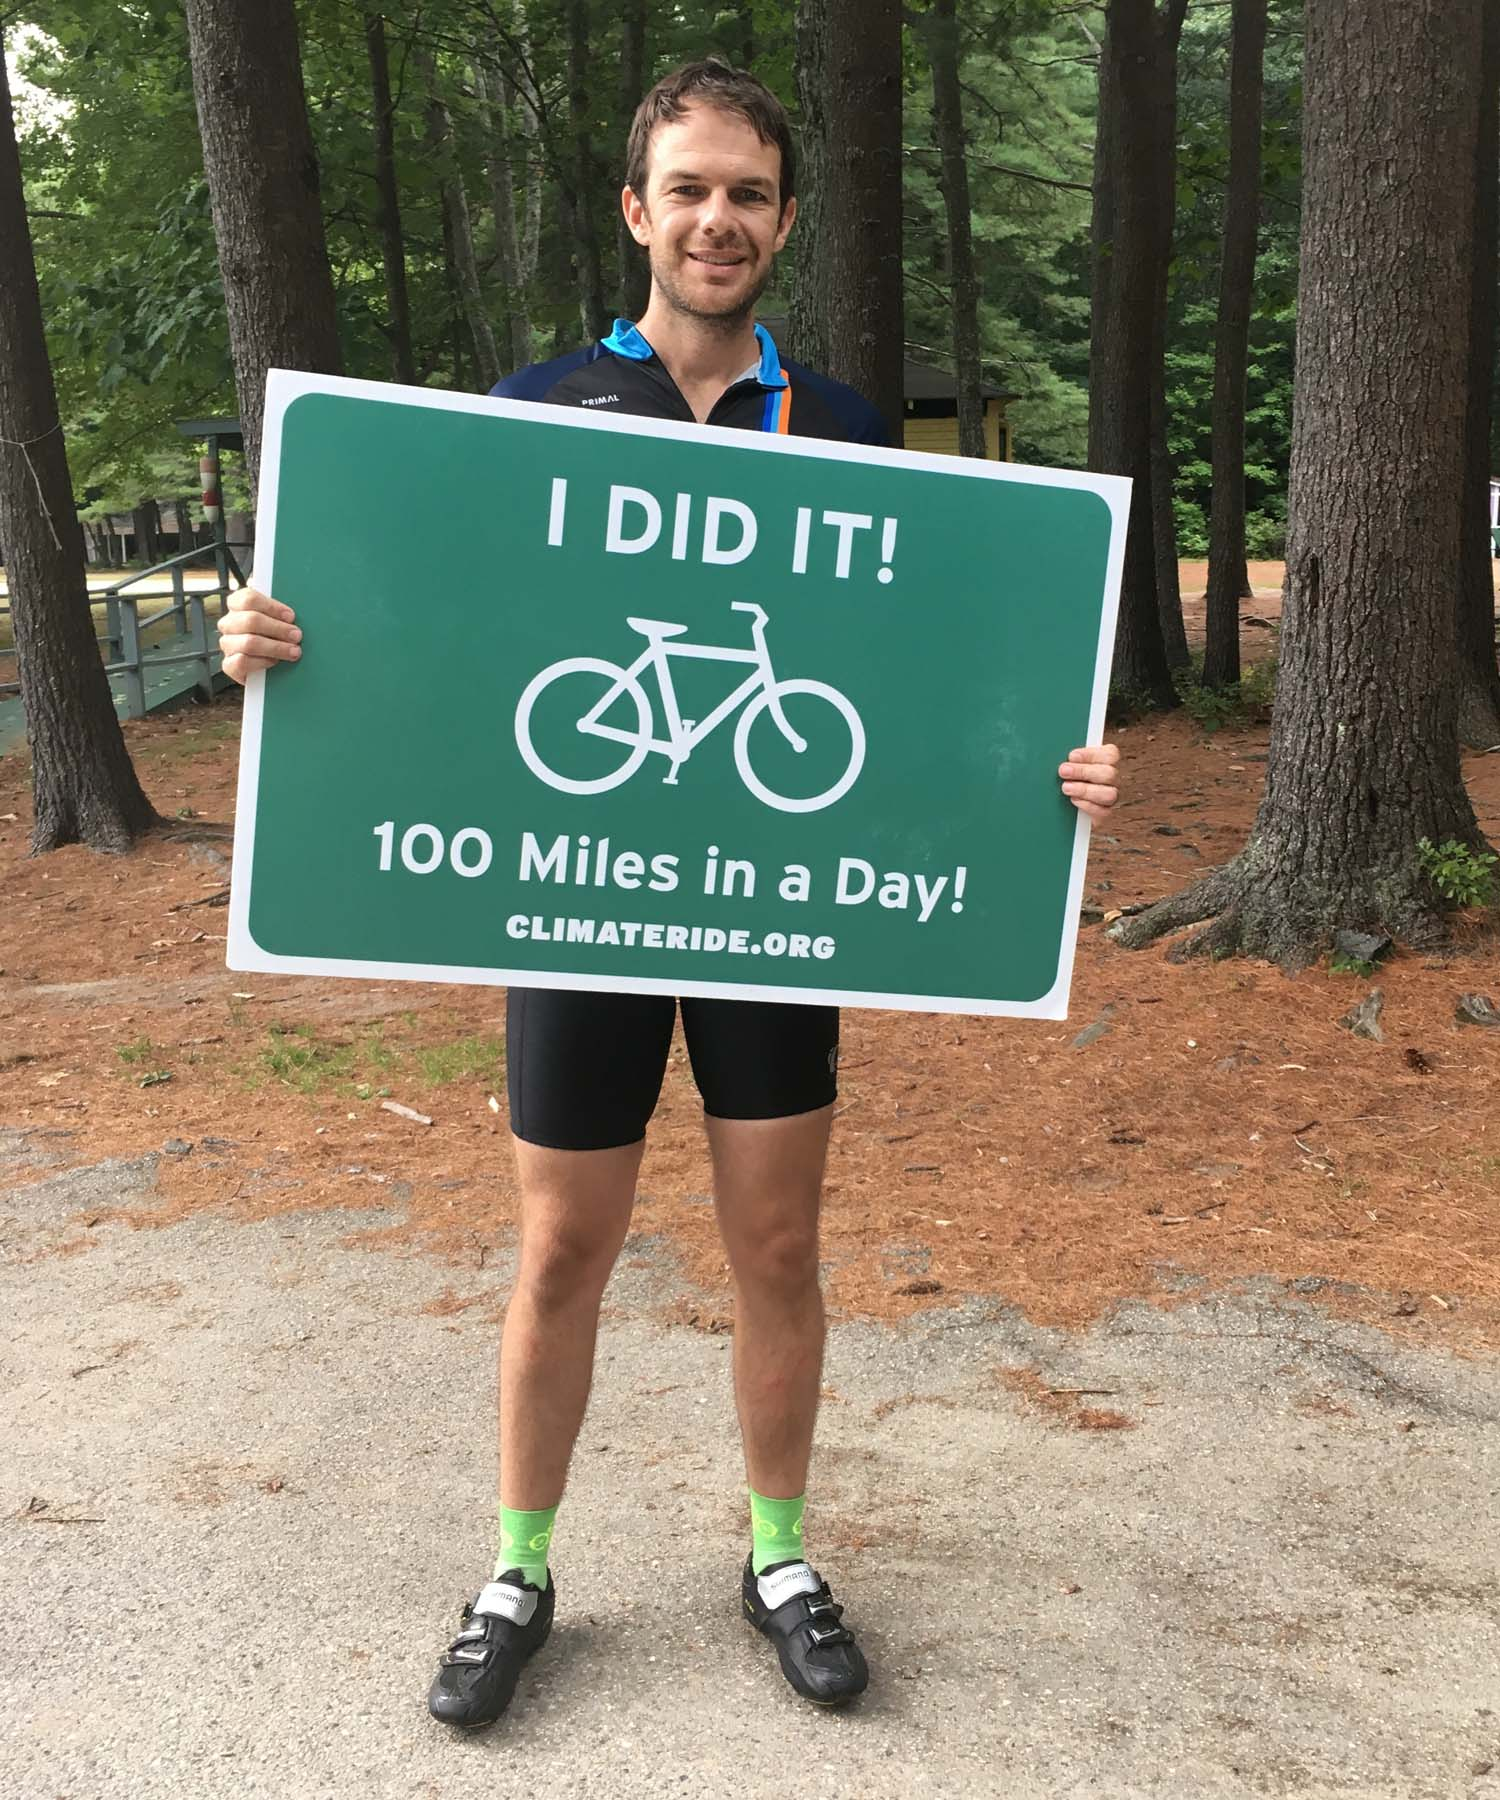 There's no better feeling than reaching a goal that once seemed unlikely—just ask Elliott!